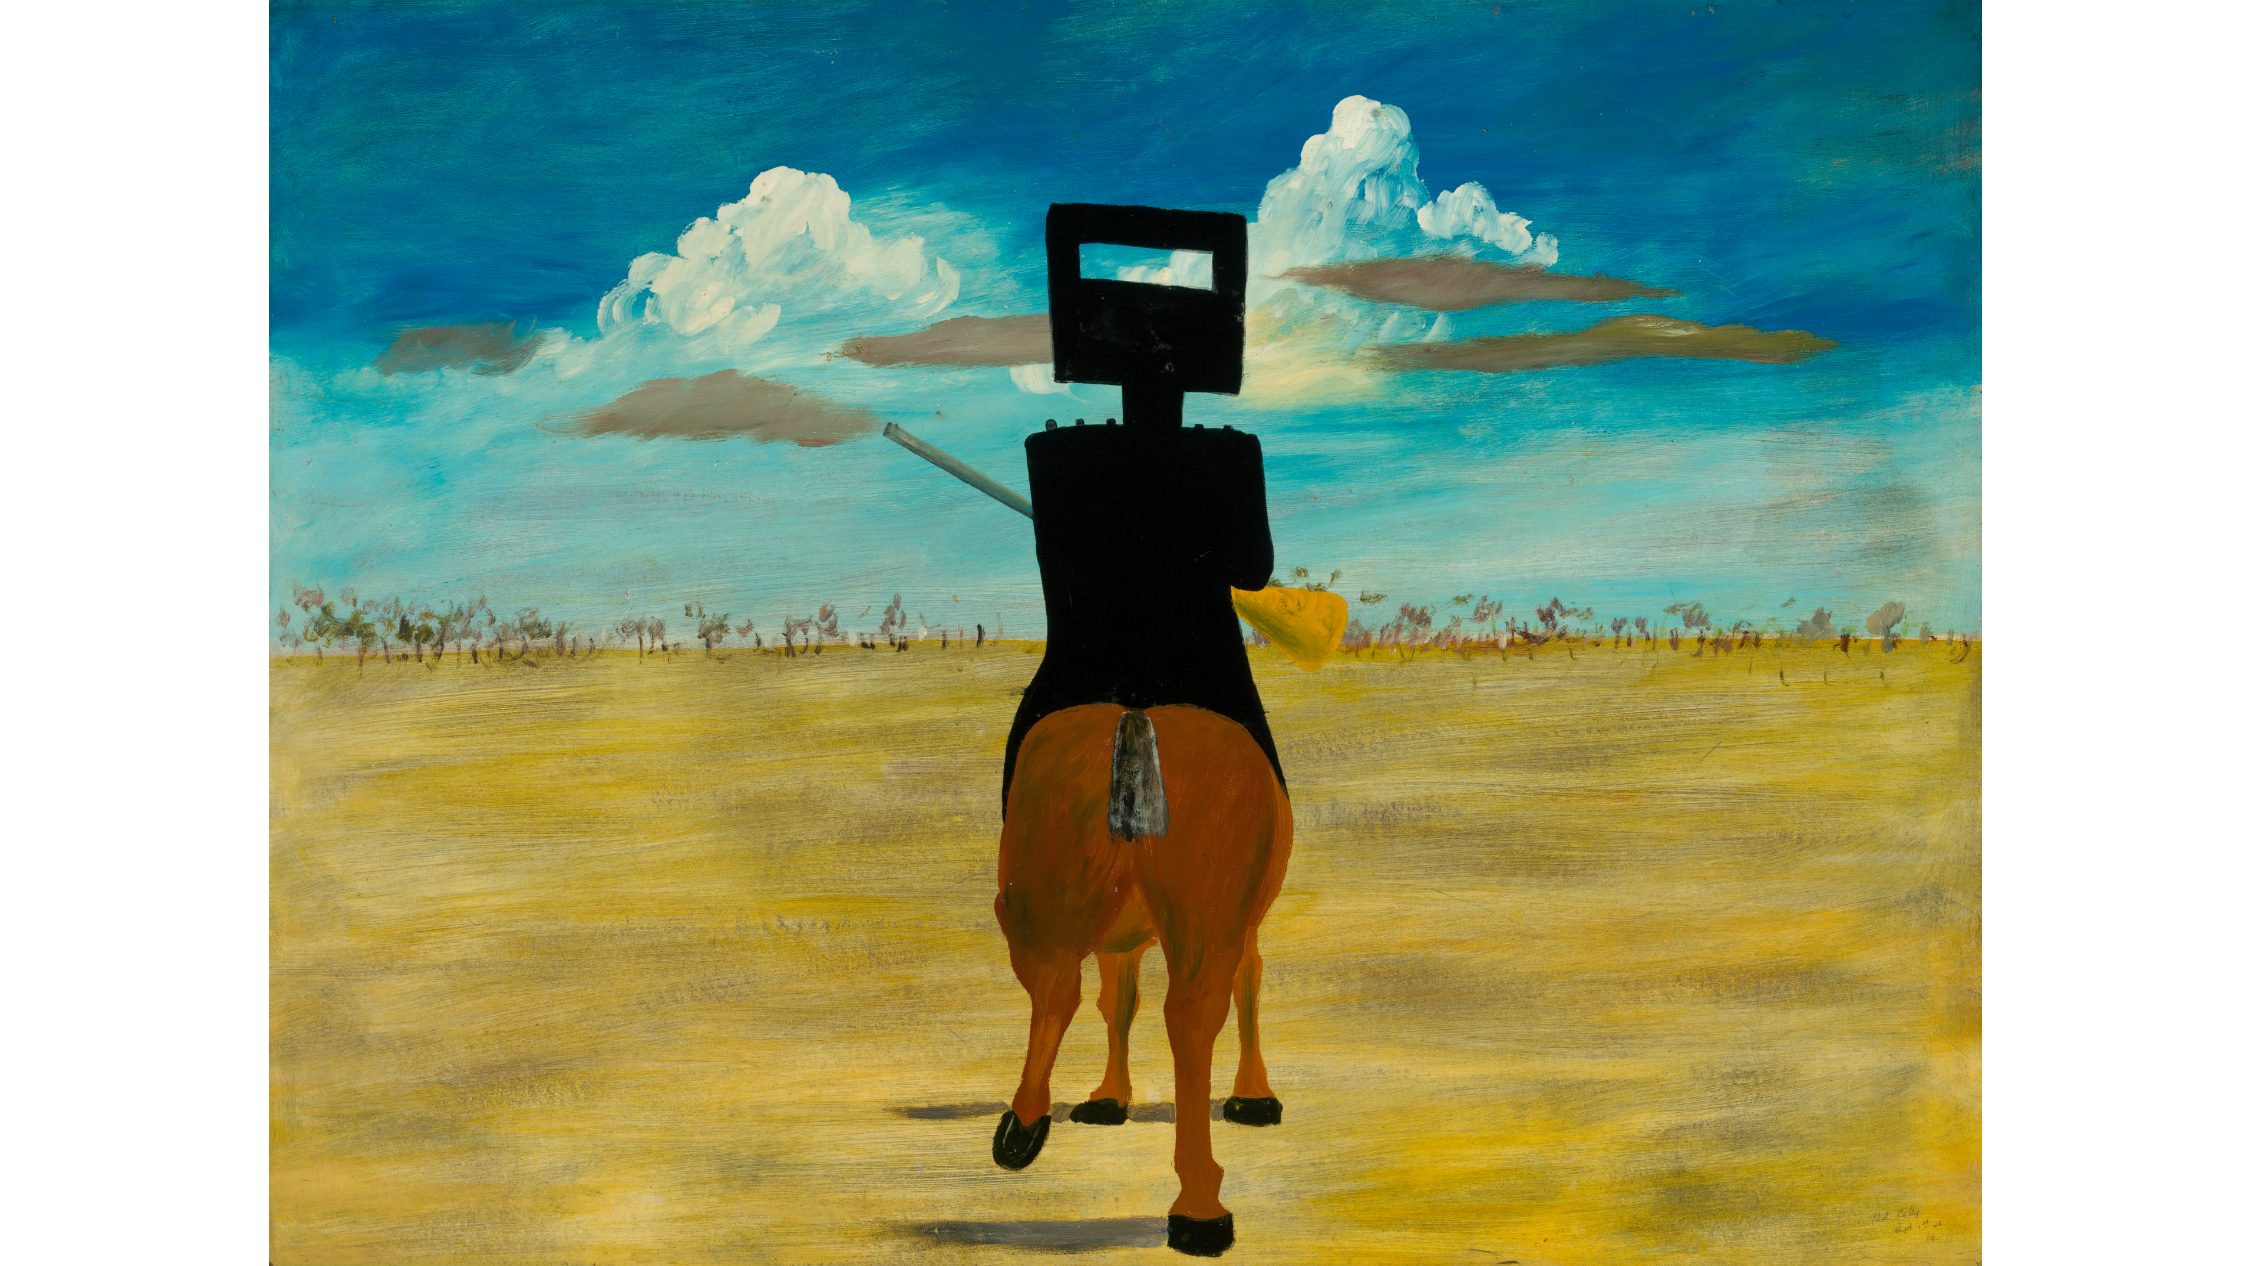 Sidney Nolan Ned Kelly Geelong Gallery 2019